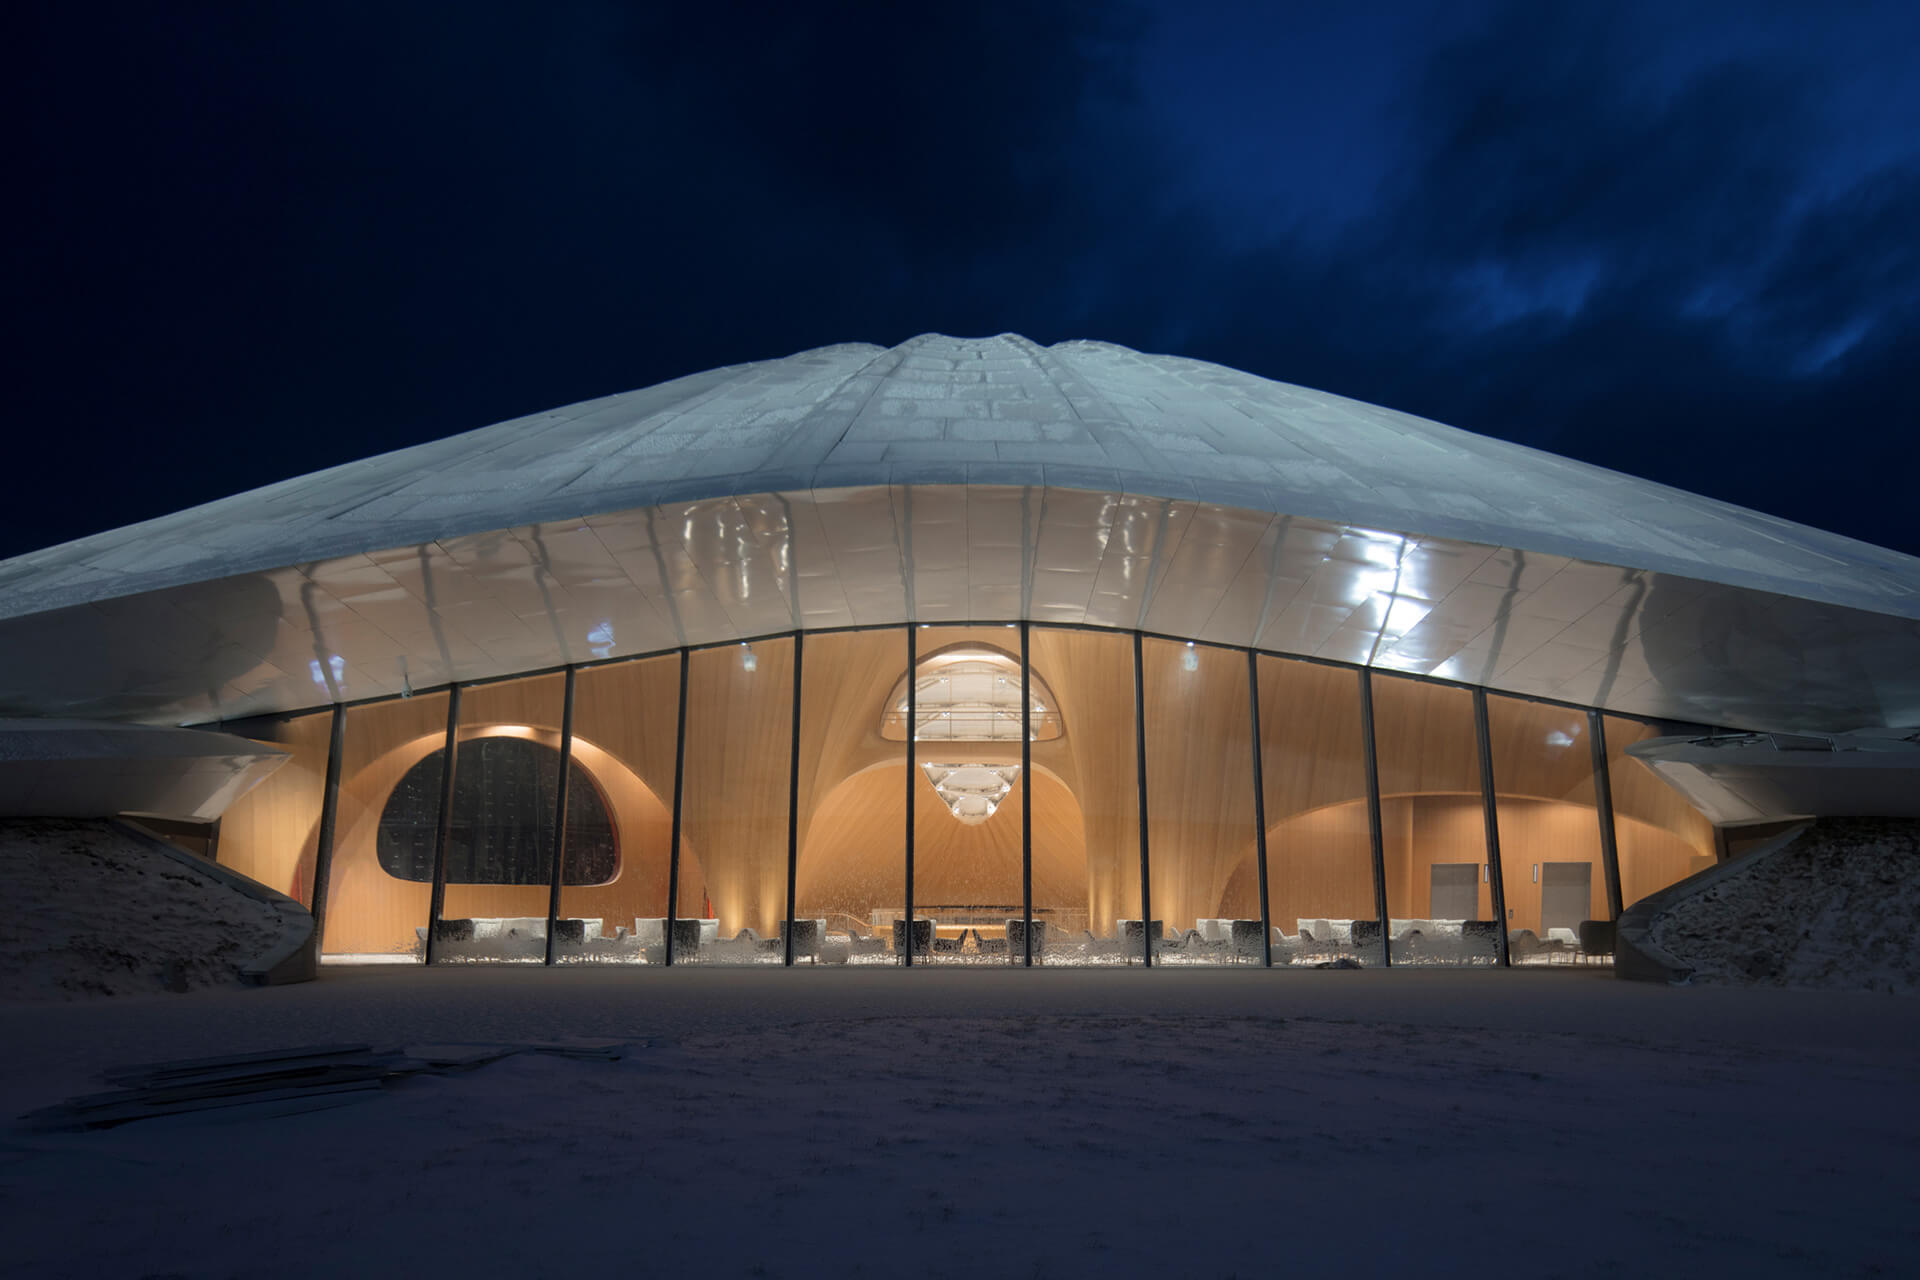 The white roof sits atop a glass exterior | Yabuli Entrepreneurs' Congress Center designed by MAD Architects | STIRworld